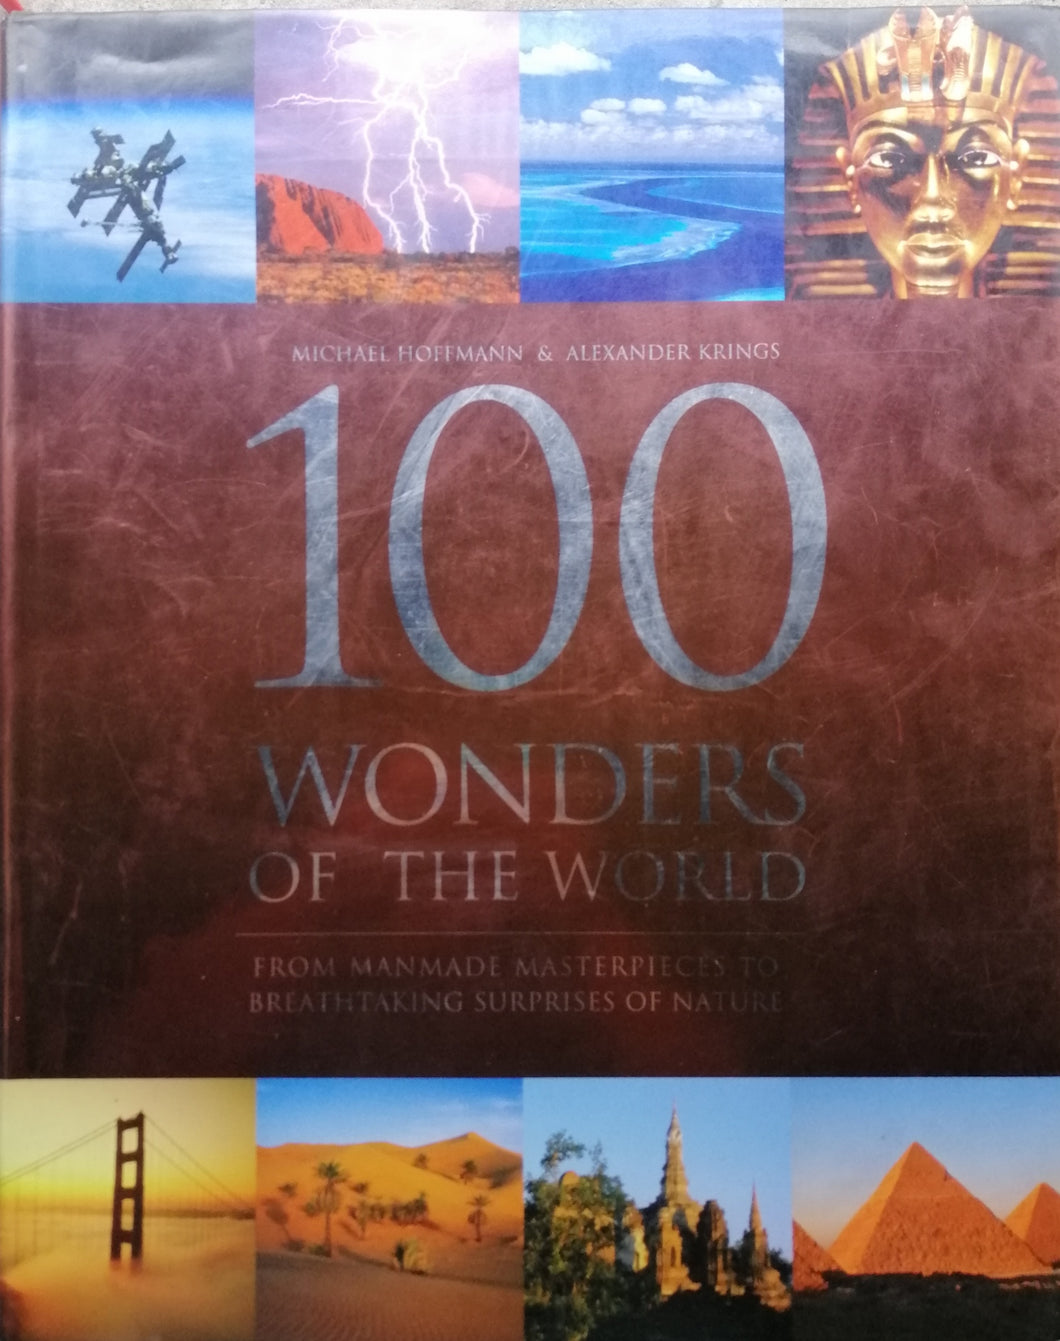 100  Wonders of the World by: Michael Hoffmann